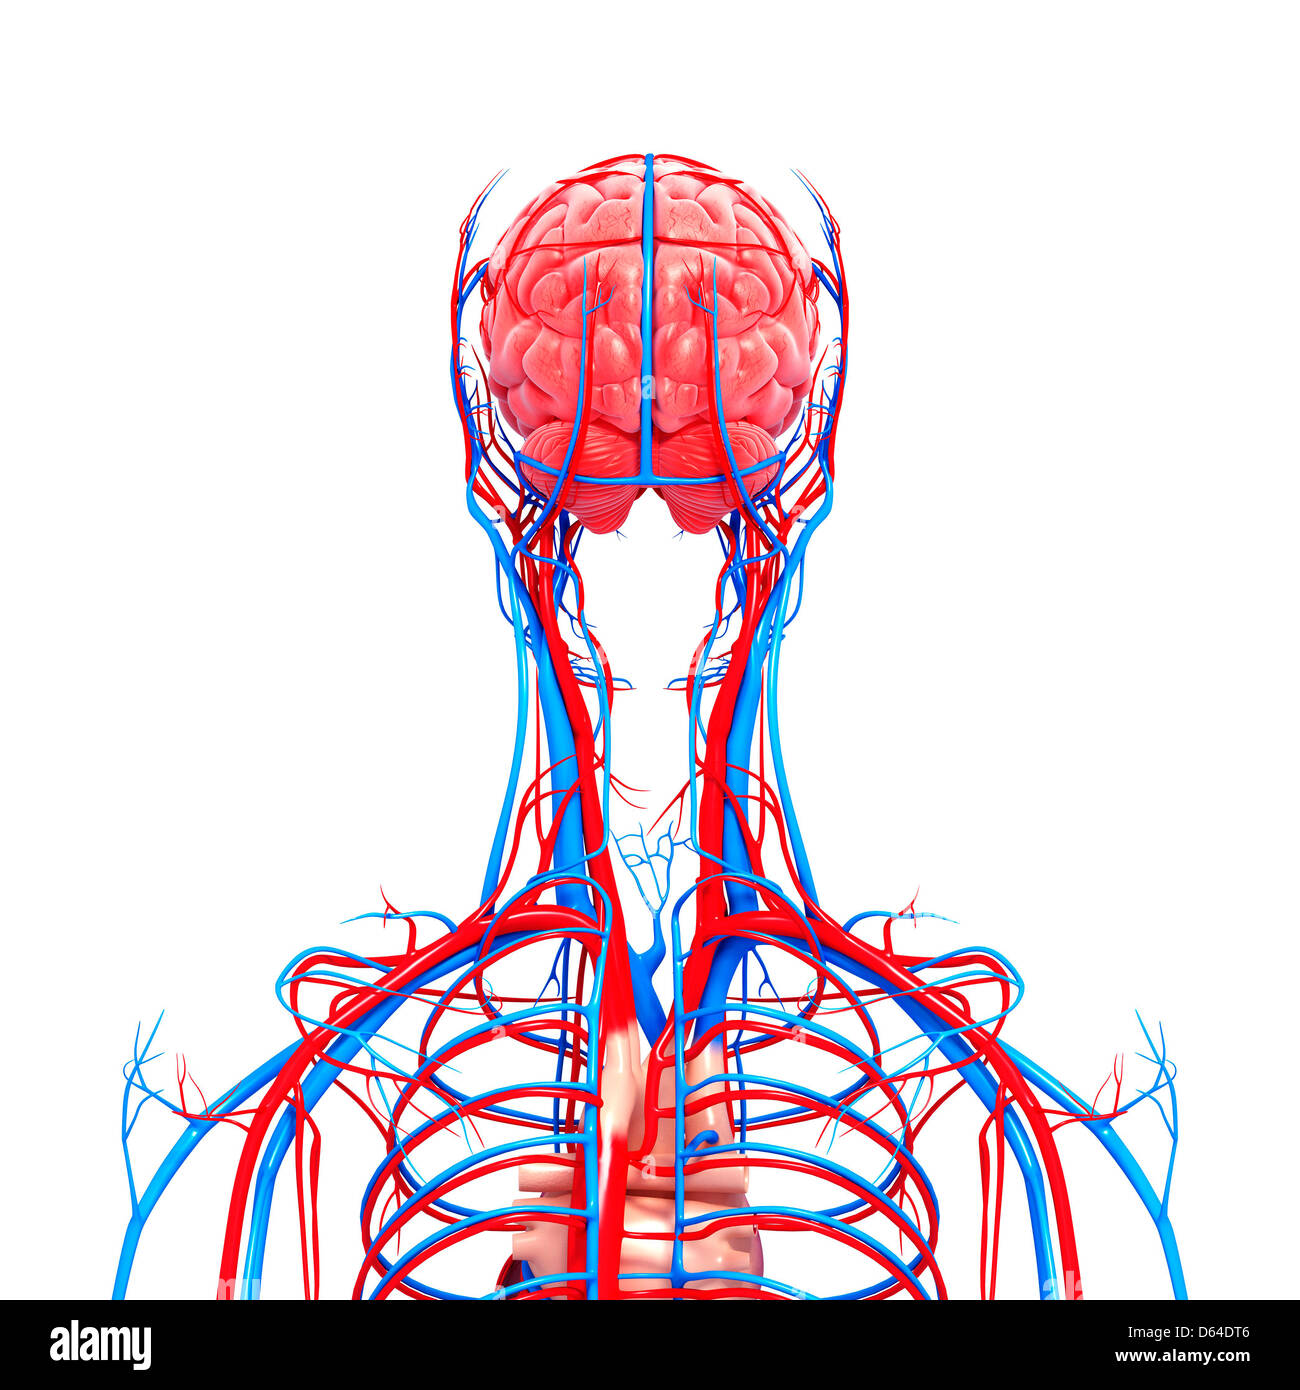 Upper body anatomy, artwork Stock Photo: 55417718 - Alamy